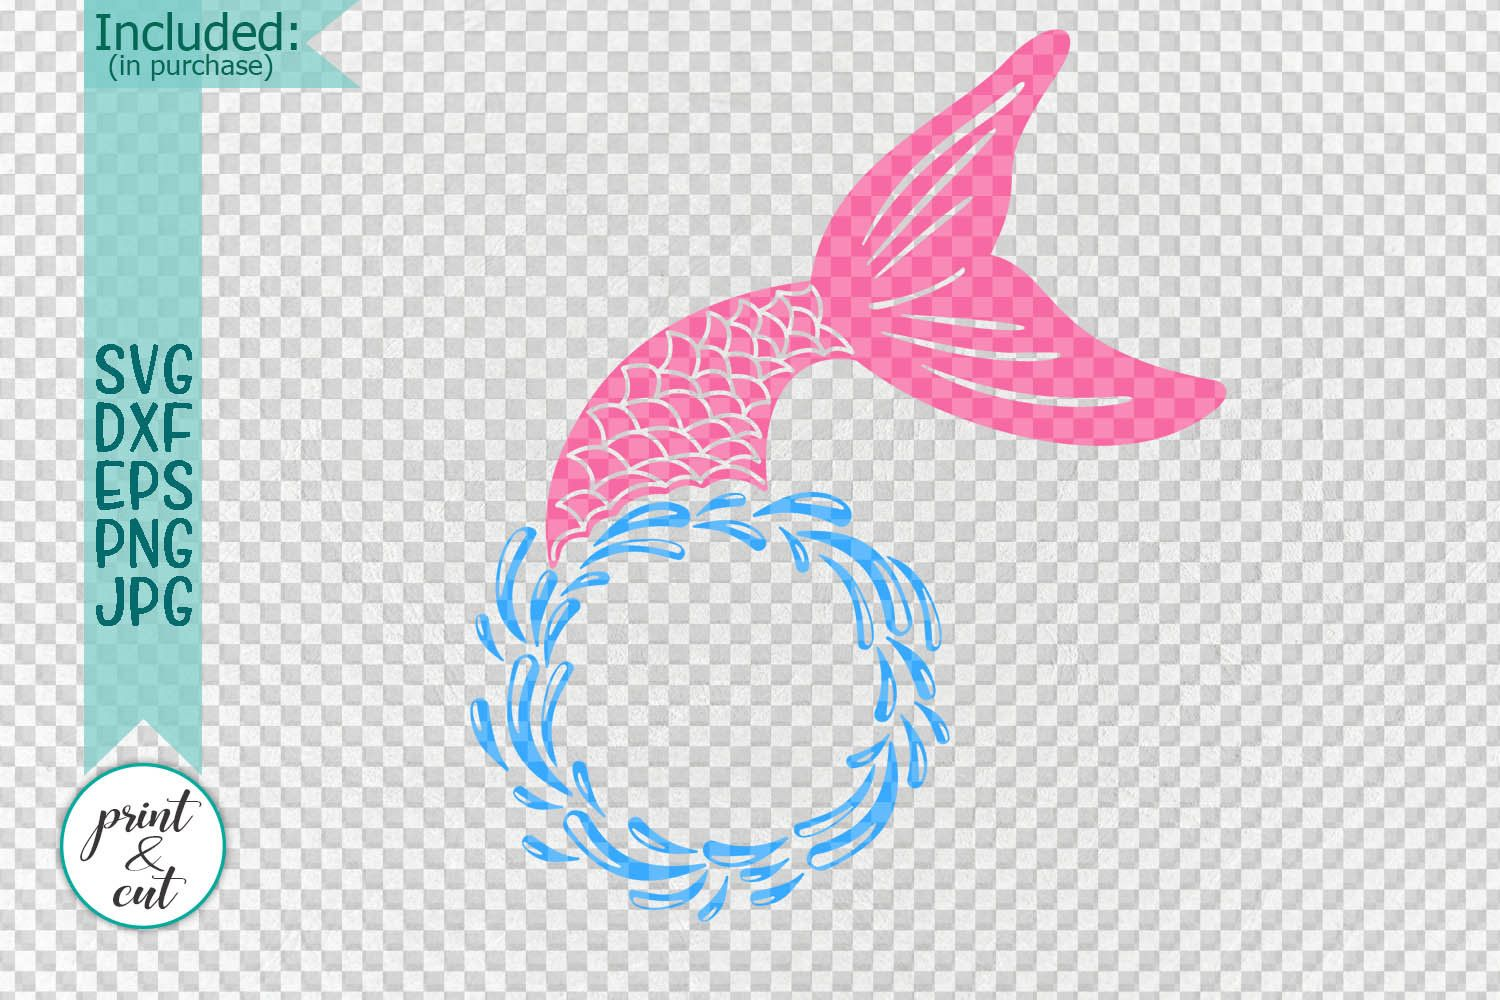 Mermaid monogram svg, beach svg, mermaid tail svg, mermaid